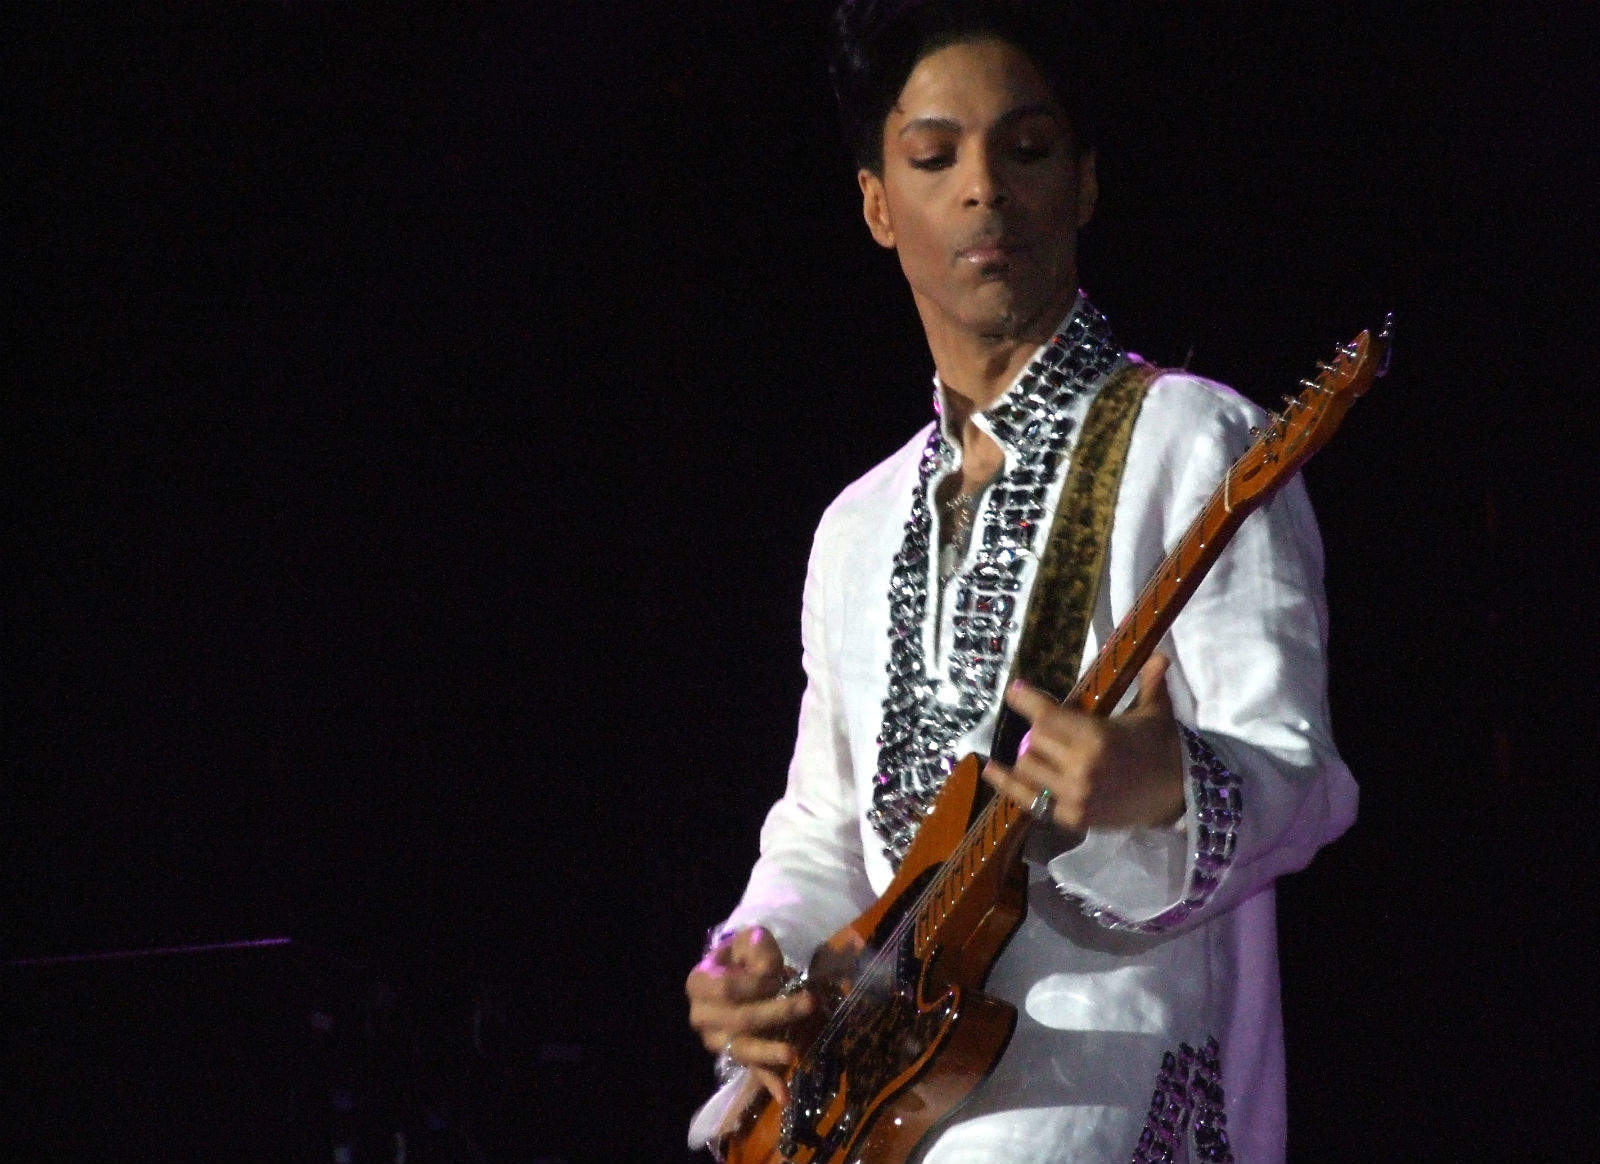 Prince is dead, but his music lives on. Just not on Apple Music.